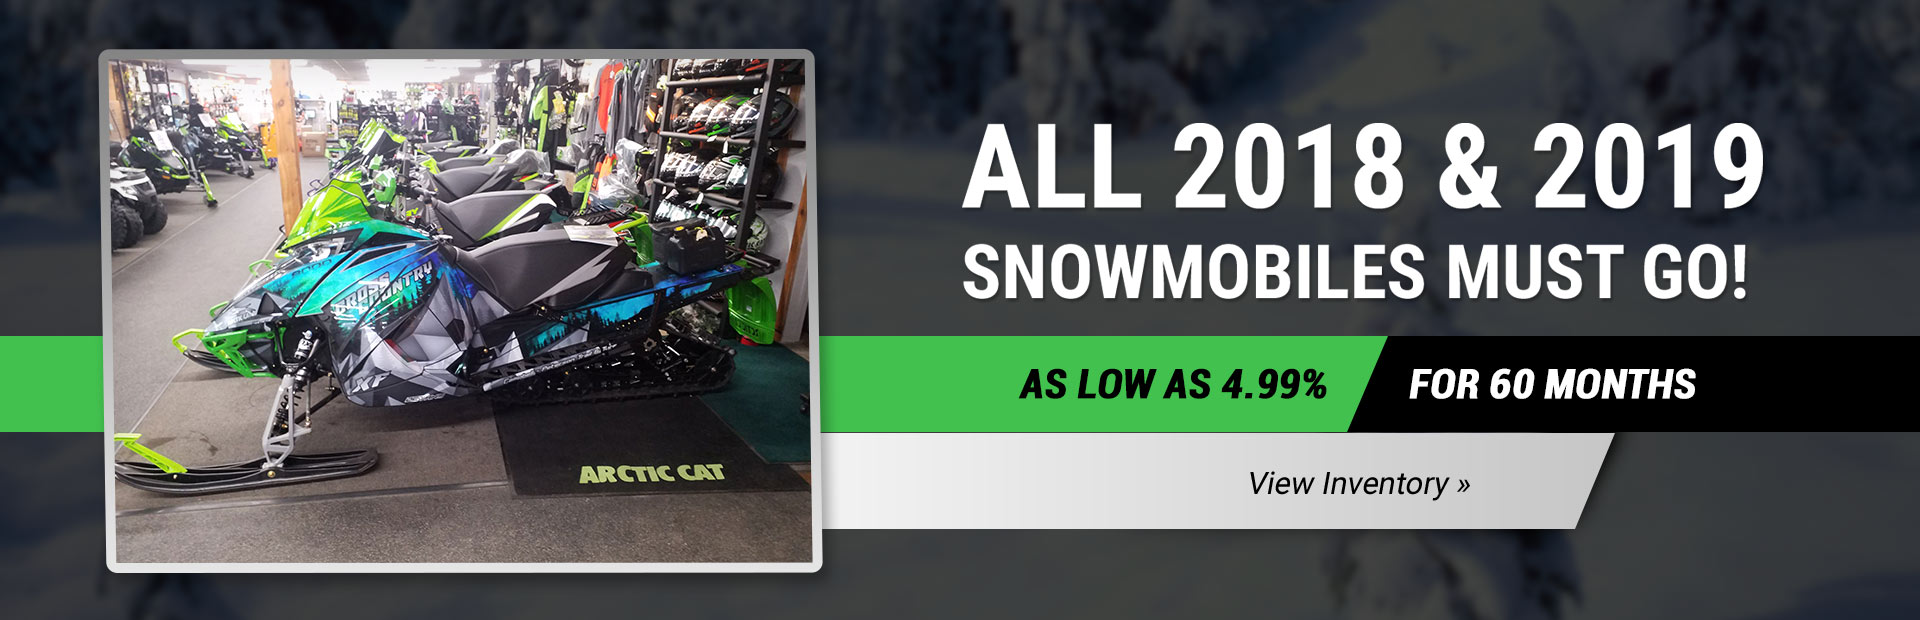 All 2018 & 2019 Snowmobiles Must Go: Click here to view our inventory.